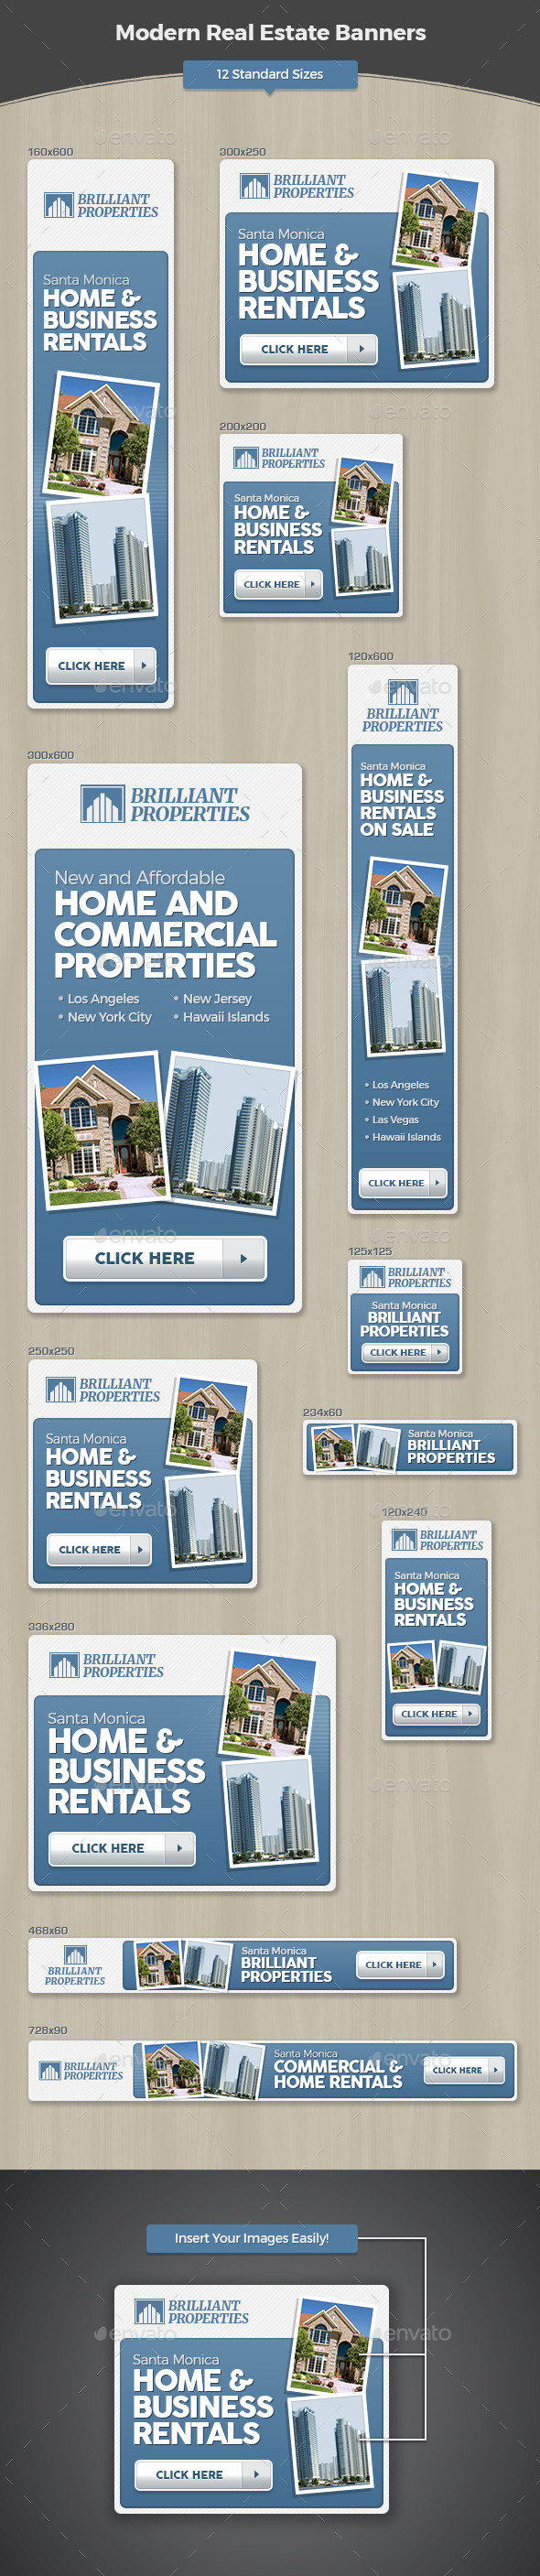 Modern Real Estate Banners - Banners & Ads Web Elements